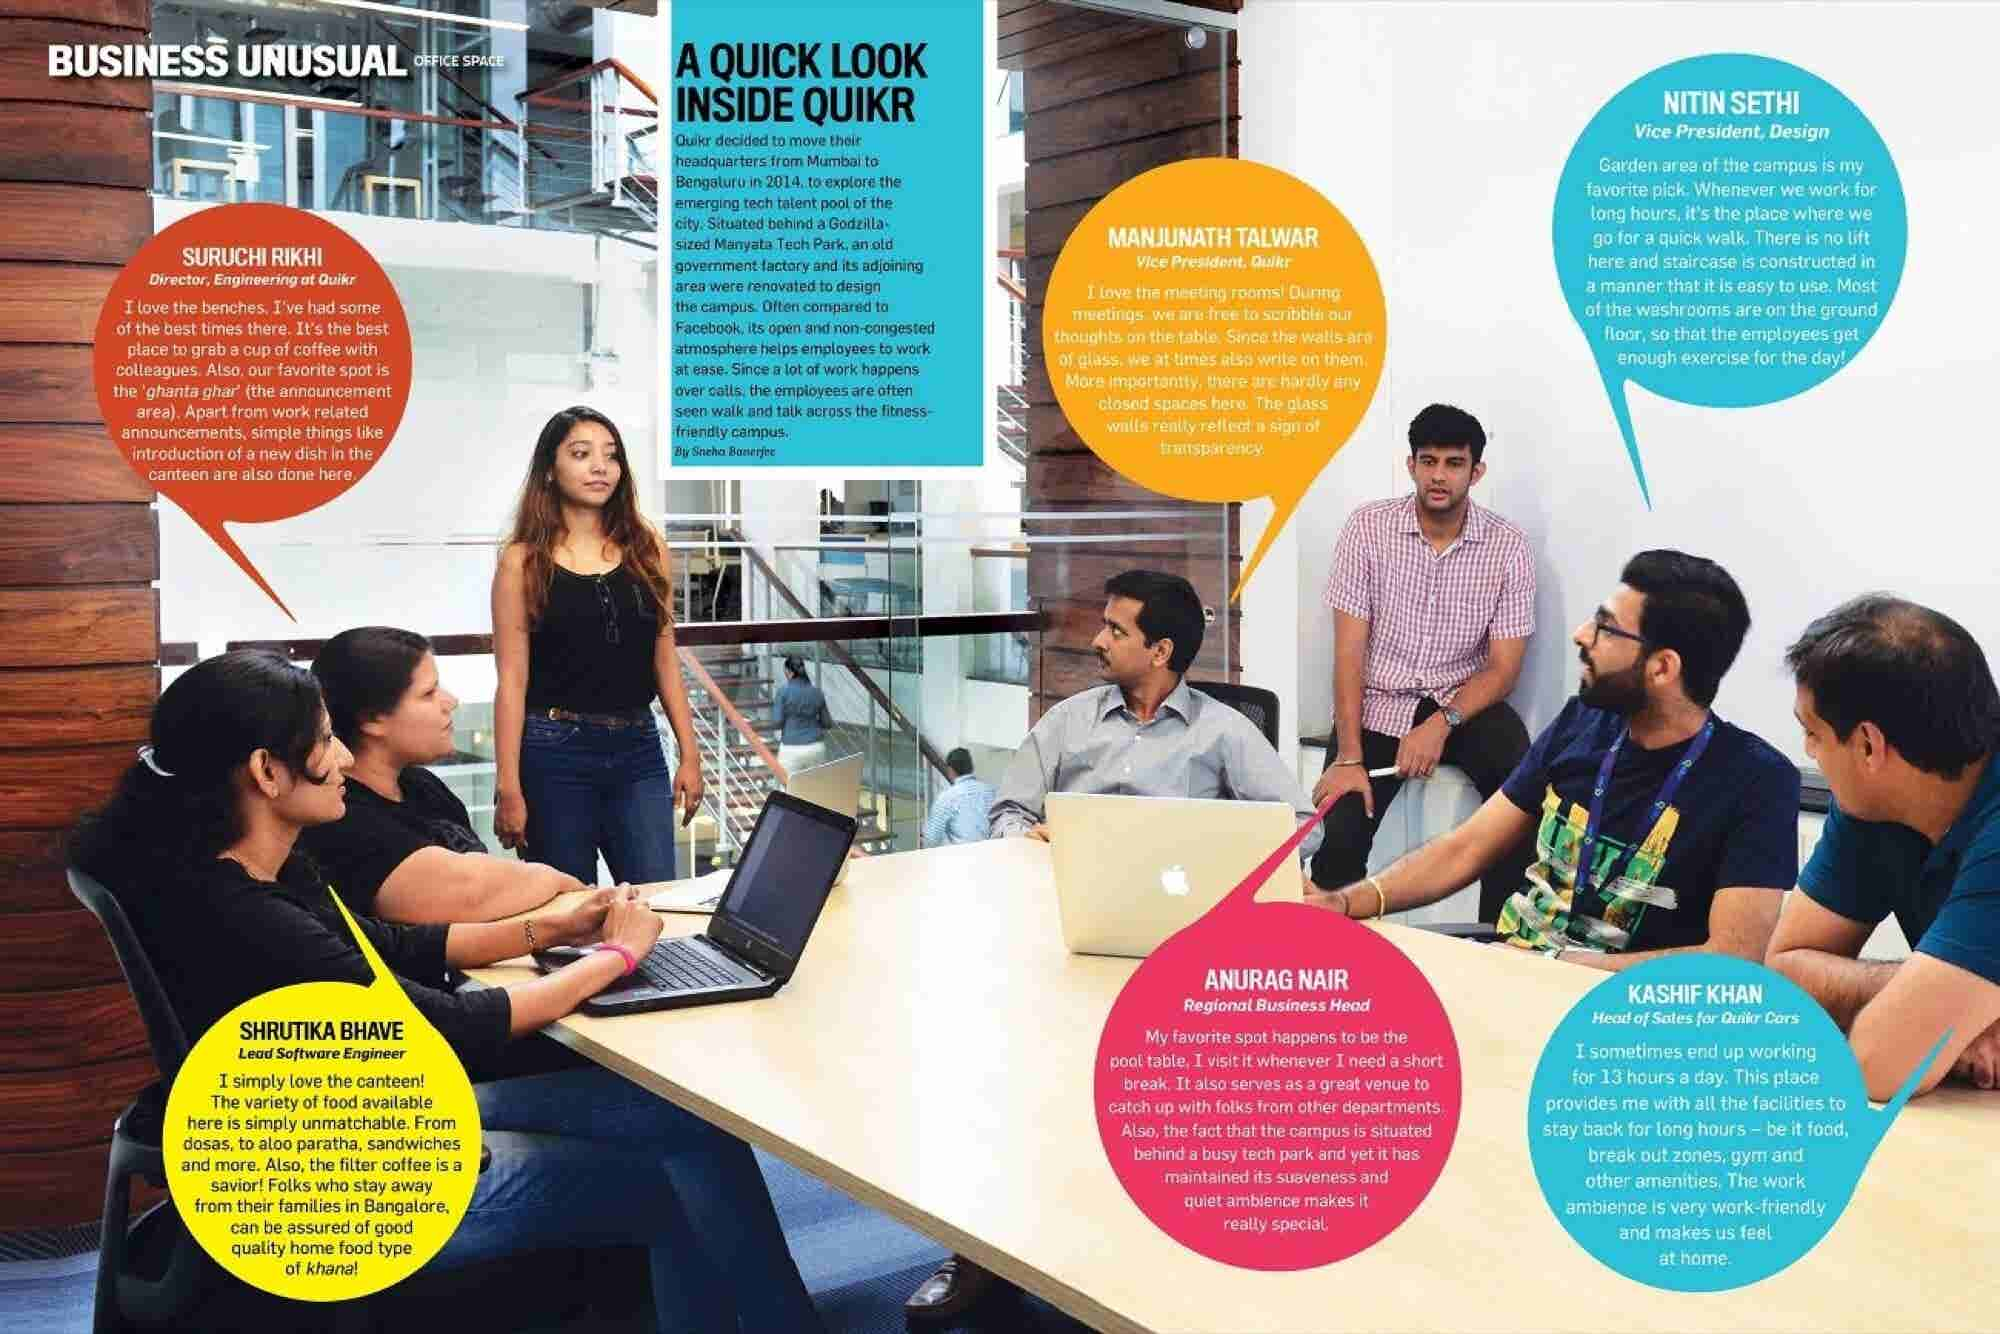 A Quick Look Inside Quikr